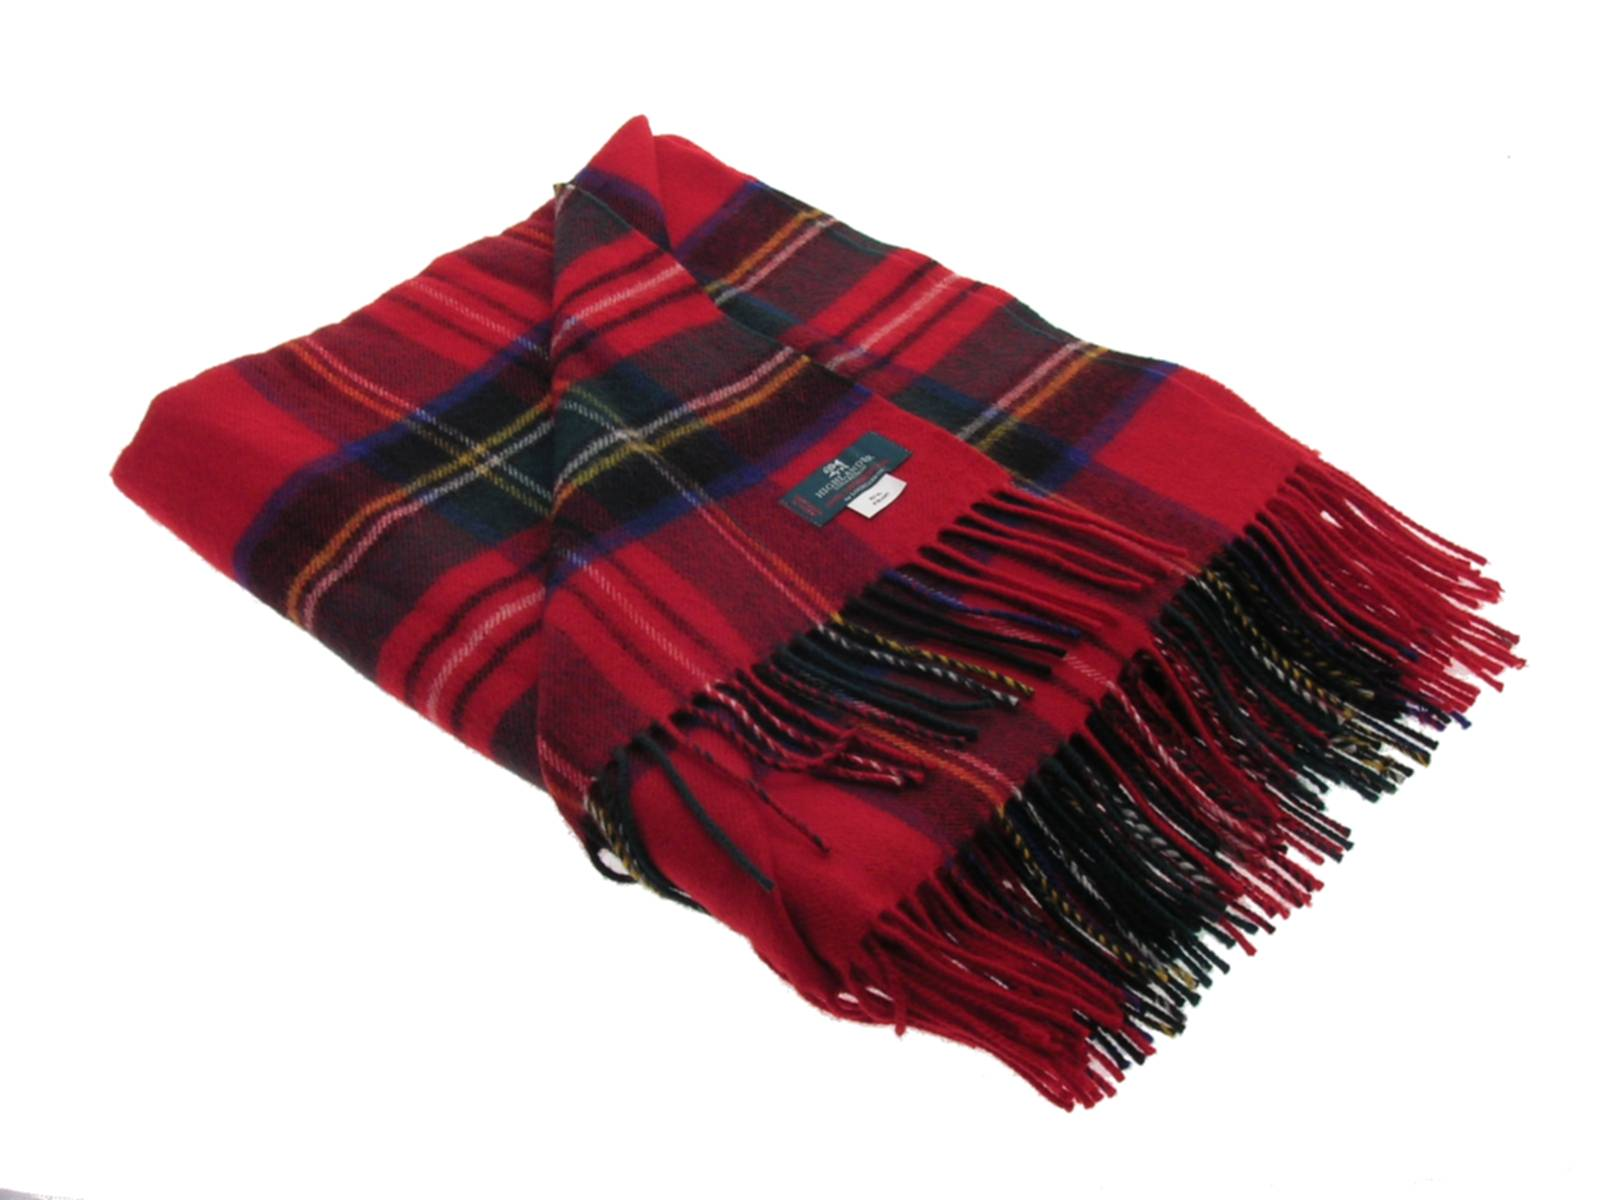 Stewart Royal Tartan Lambswool Blanket